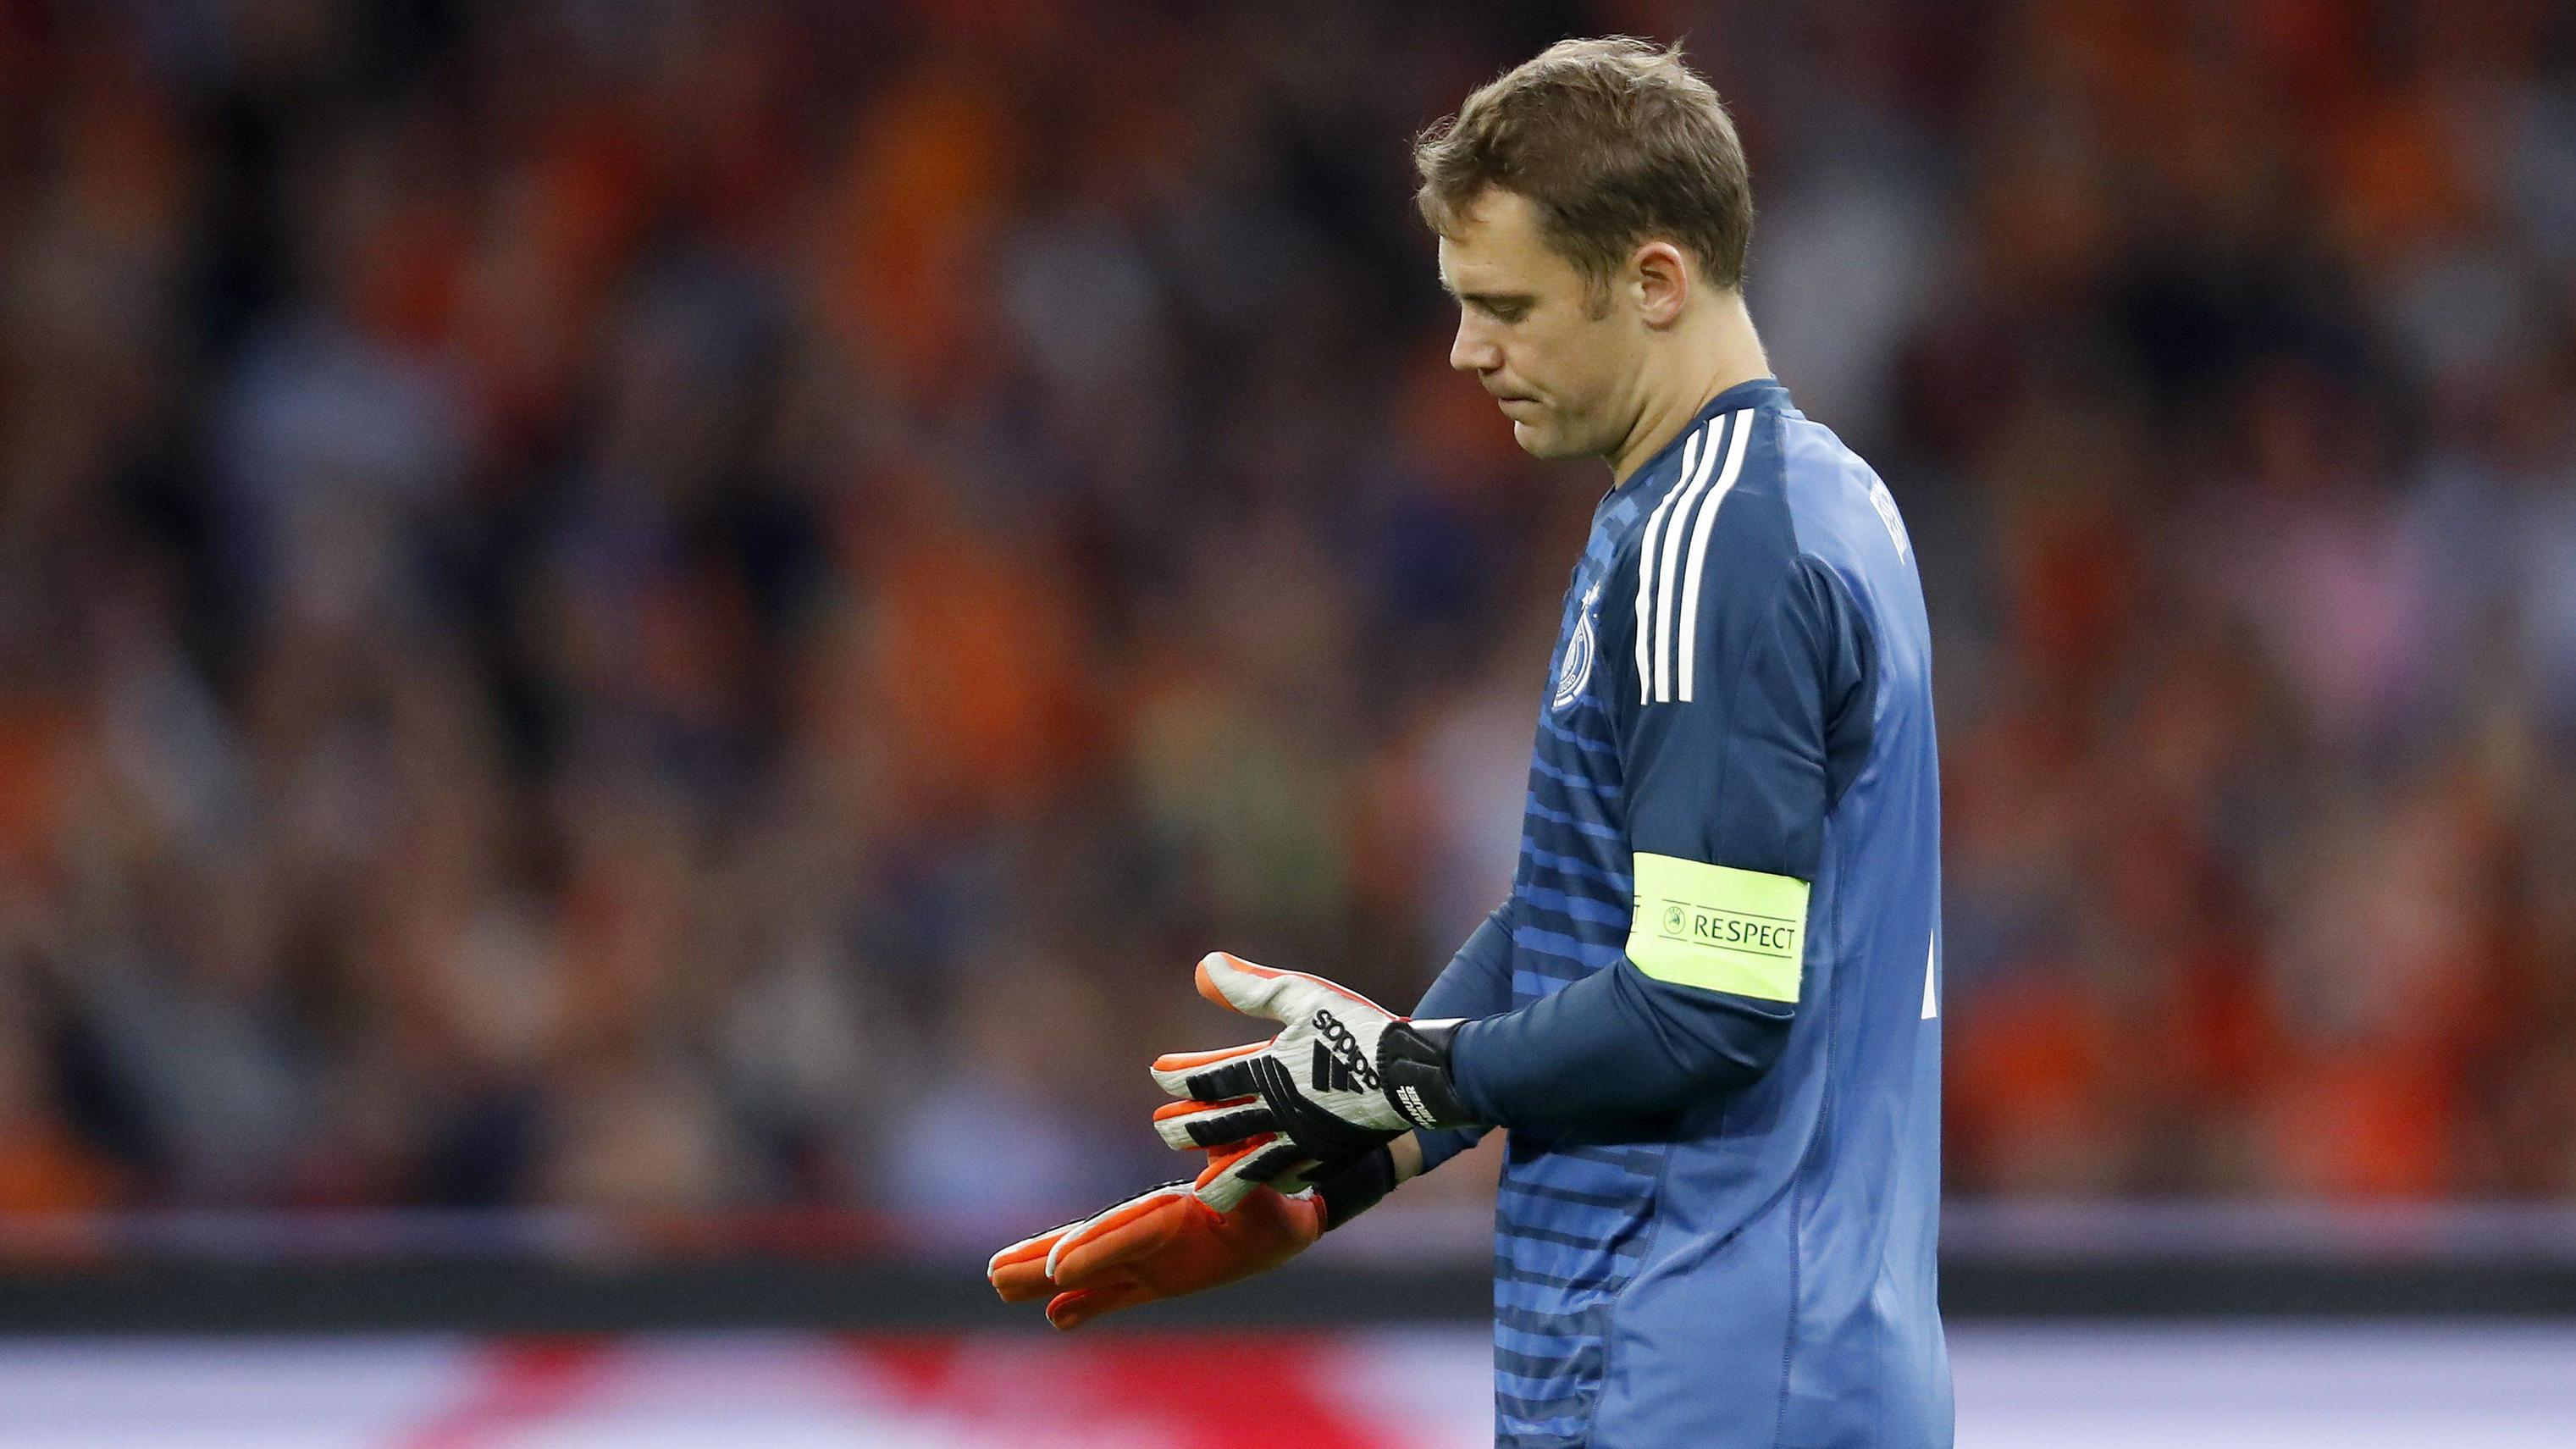 Germay goalkeeper Manuel Neuer during the UEFA Nations League A group 1 qualifying match between The Netherlands and Germany at the Johan Cruijff Arena on October 13, 2018 in Amsterdam, The Netherlands UEFA Nations League A group 1 2018/2019 xVIxVIxI